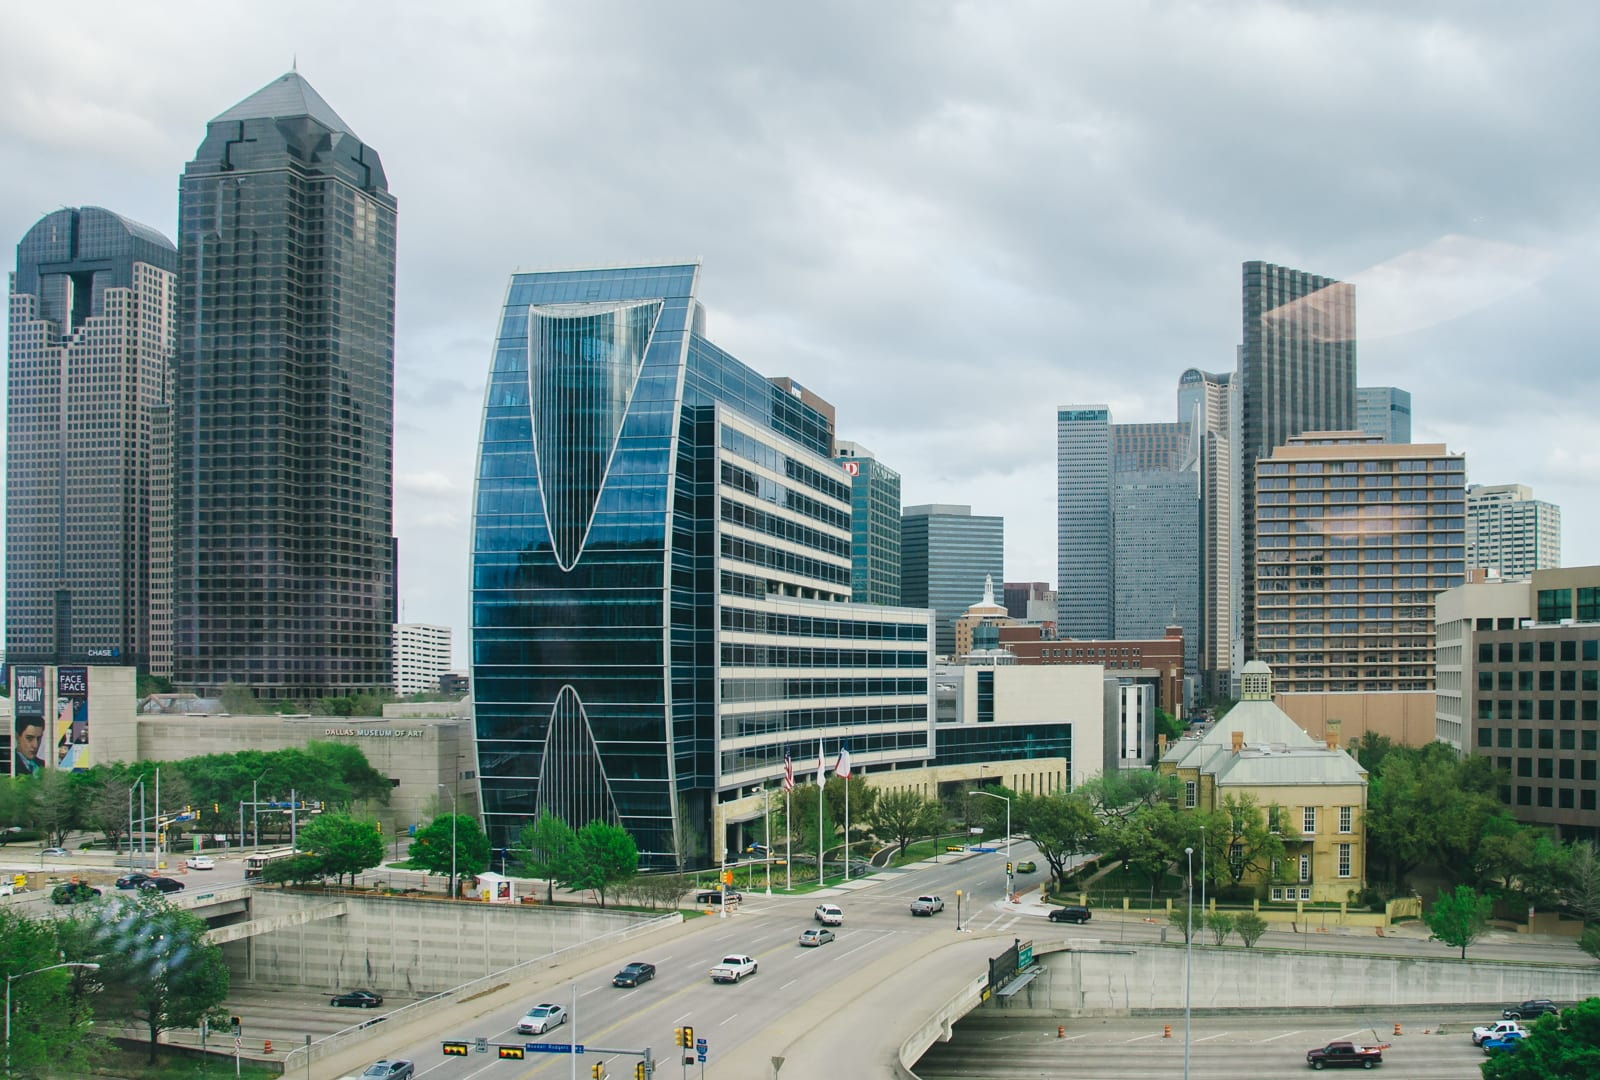 Uptown Dallas right before a storm hit